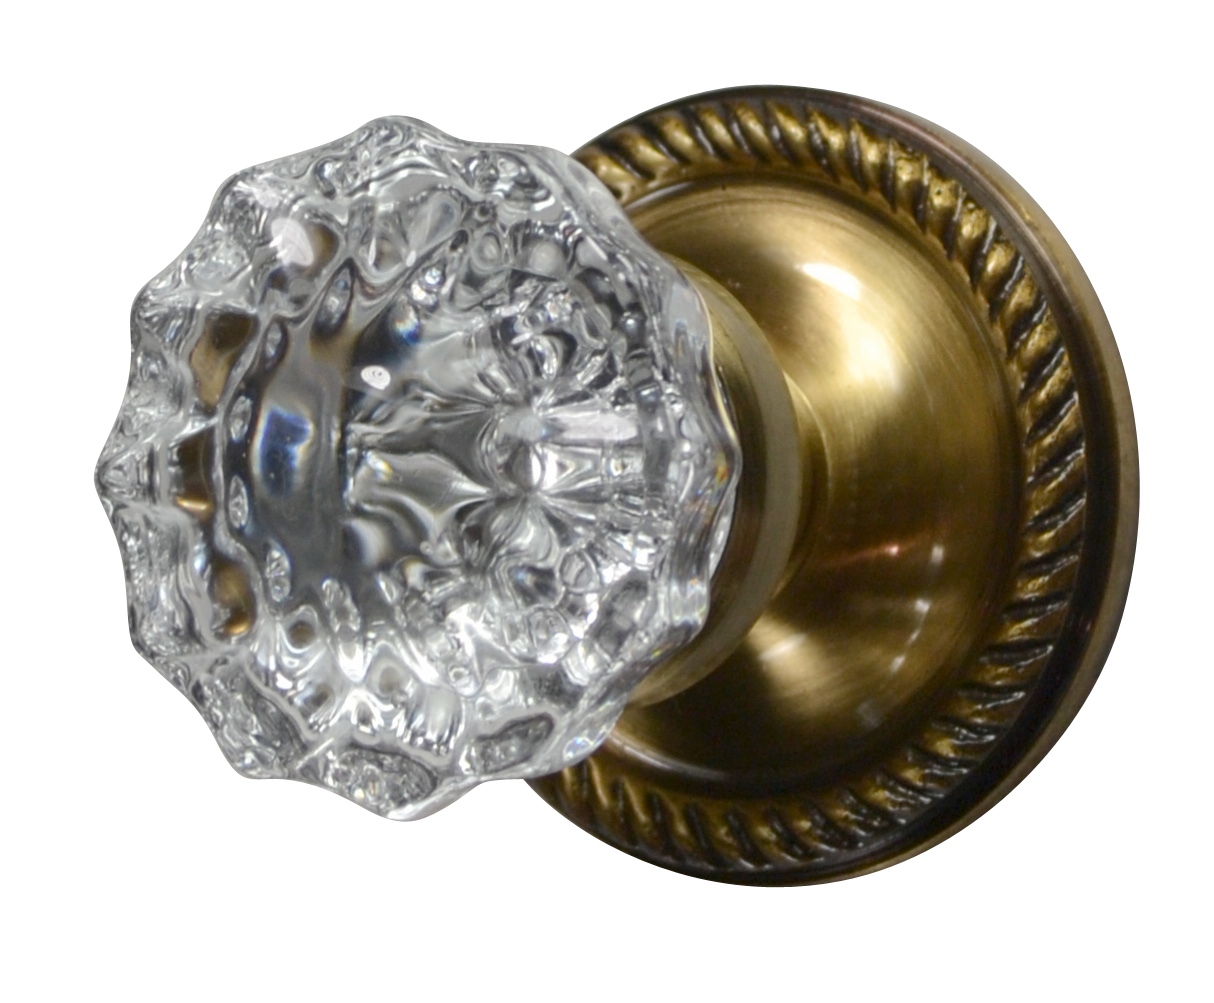 plate doors back providence crystal with glass door oil backplate finish doorknob features rubbed knob bronze deco dummy art set